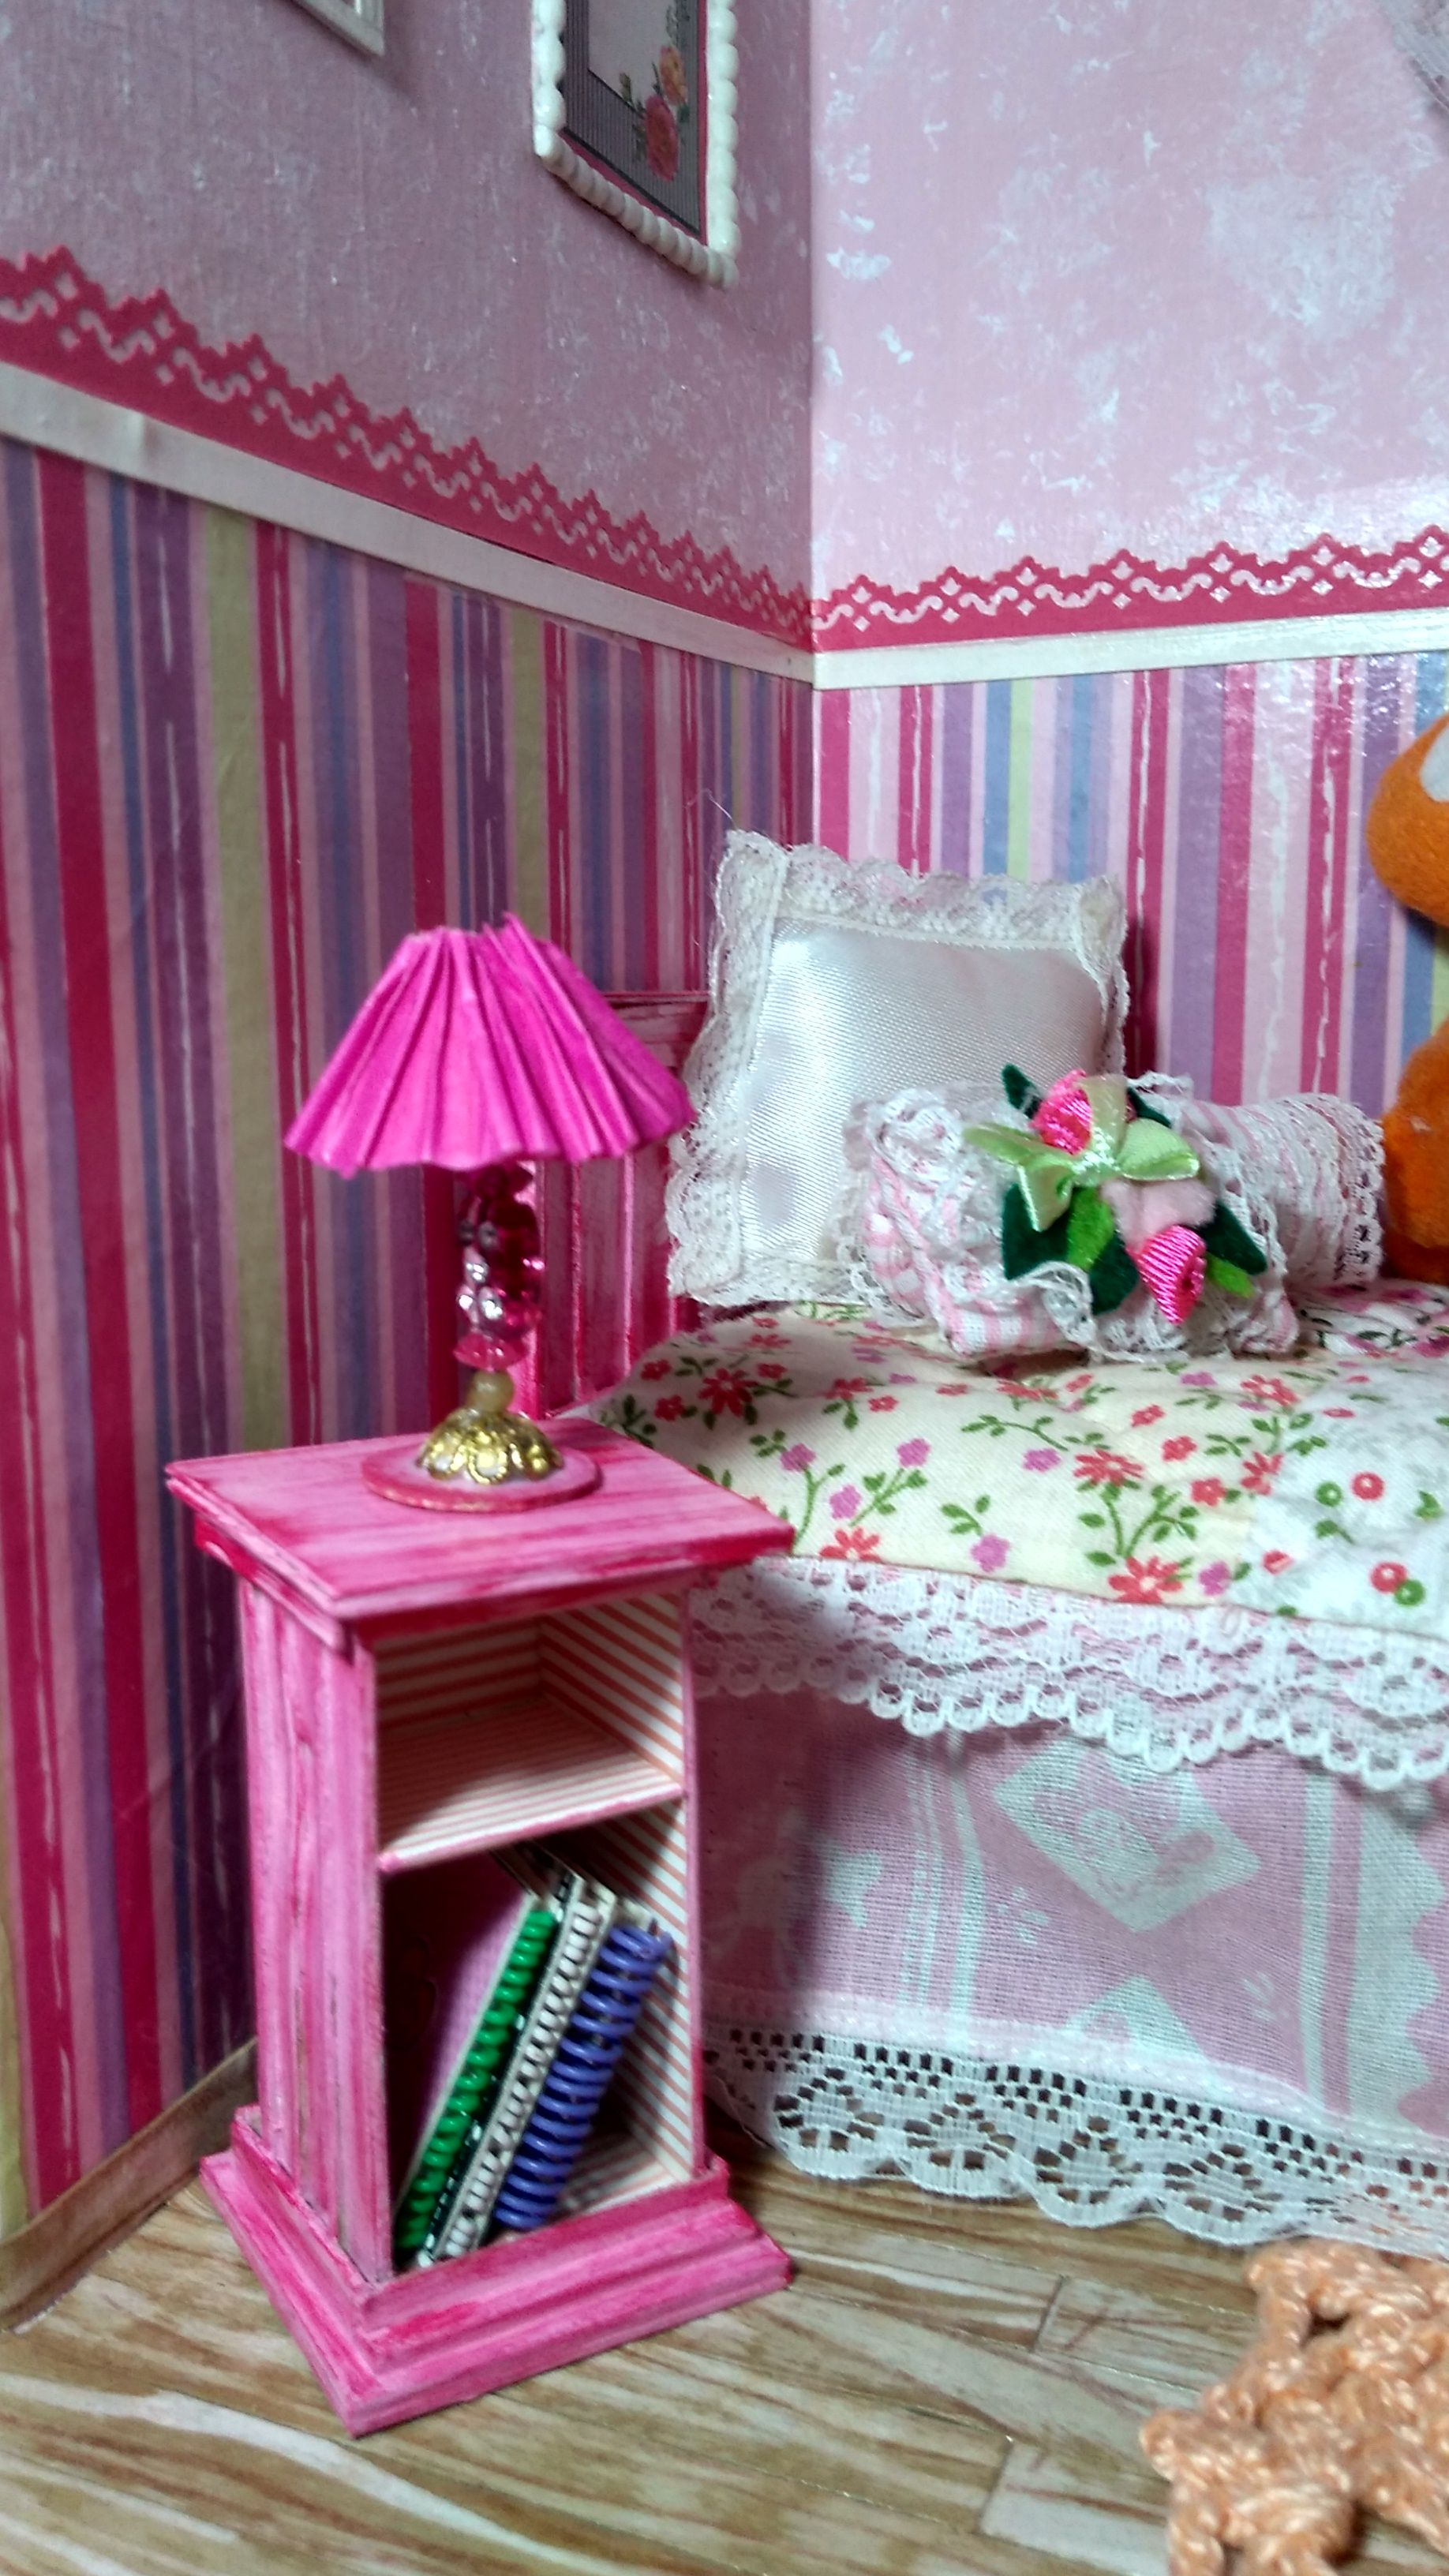 Abajur E Criado Mudo Do Quarto Da Barbie